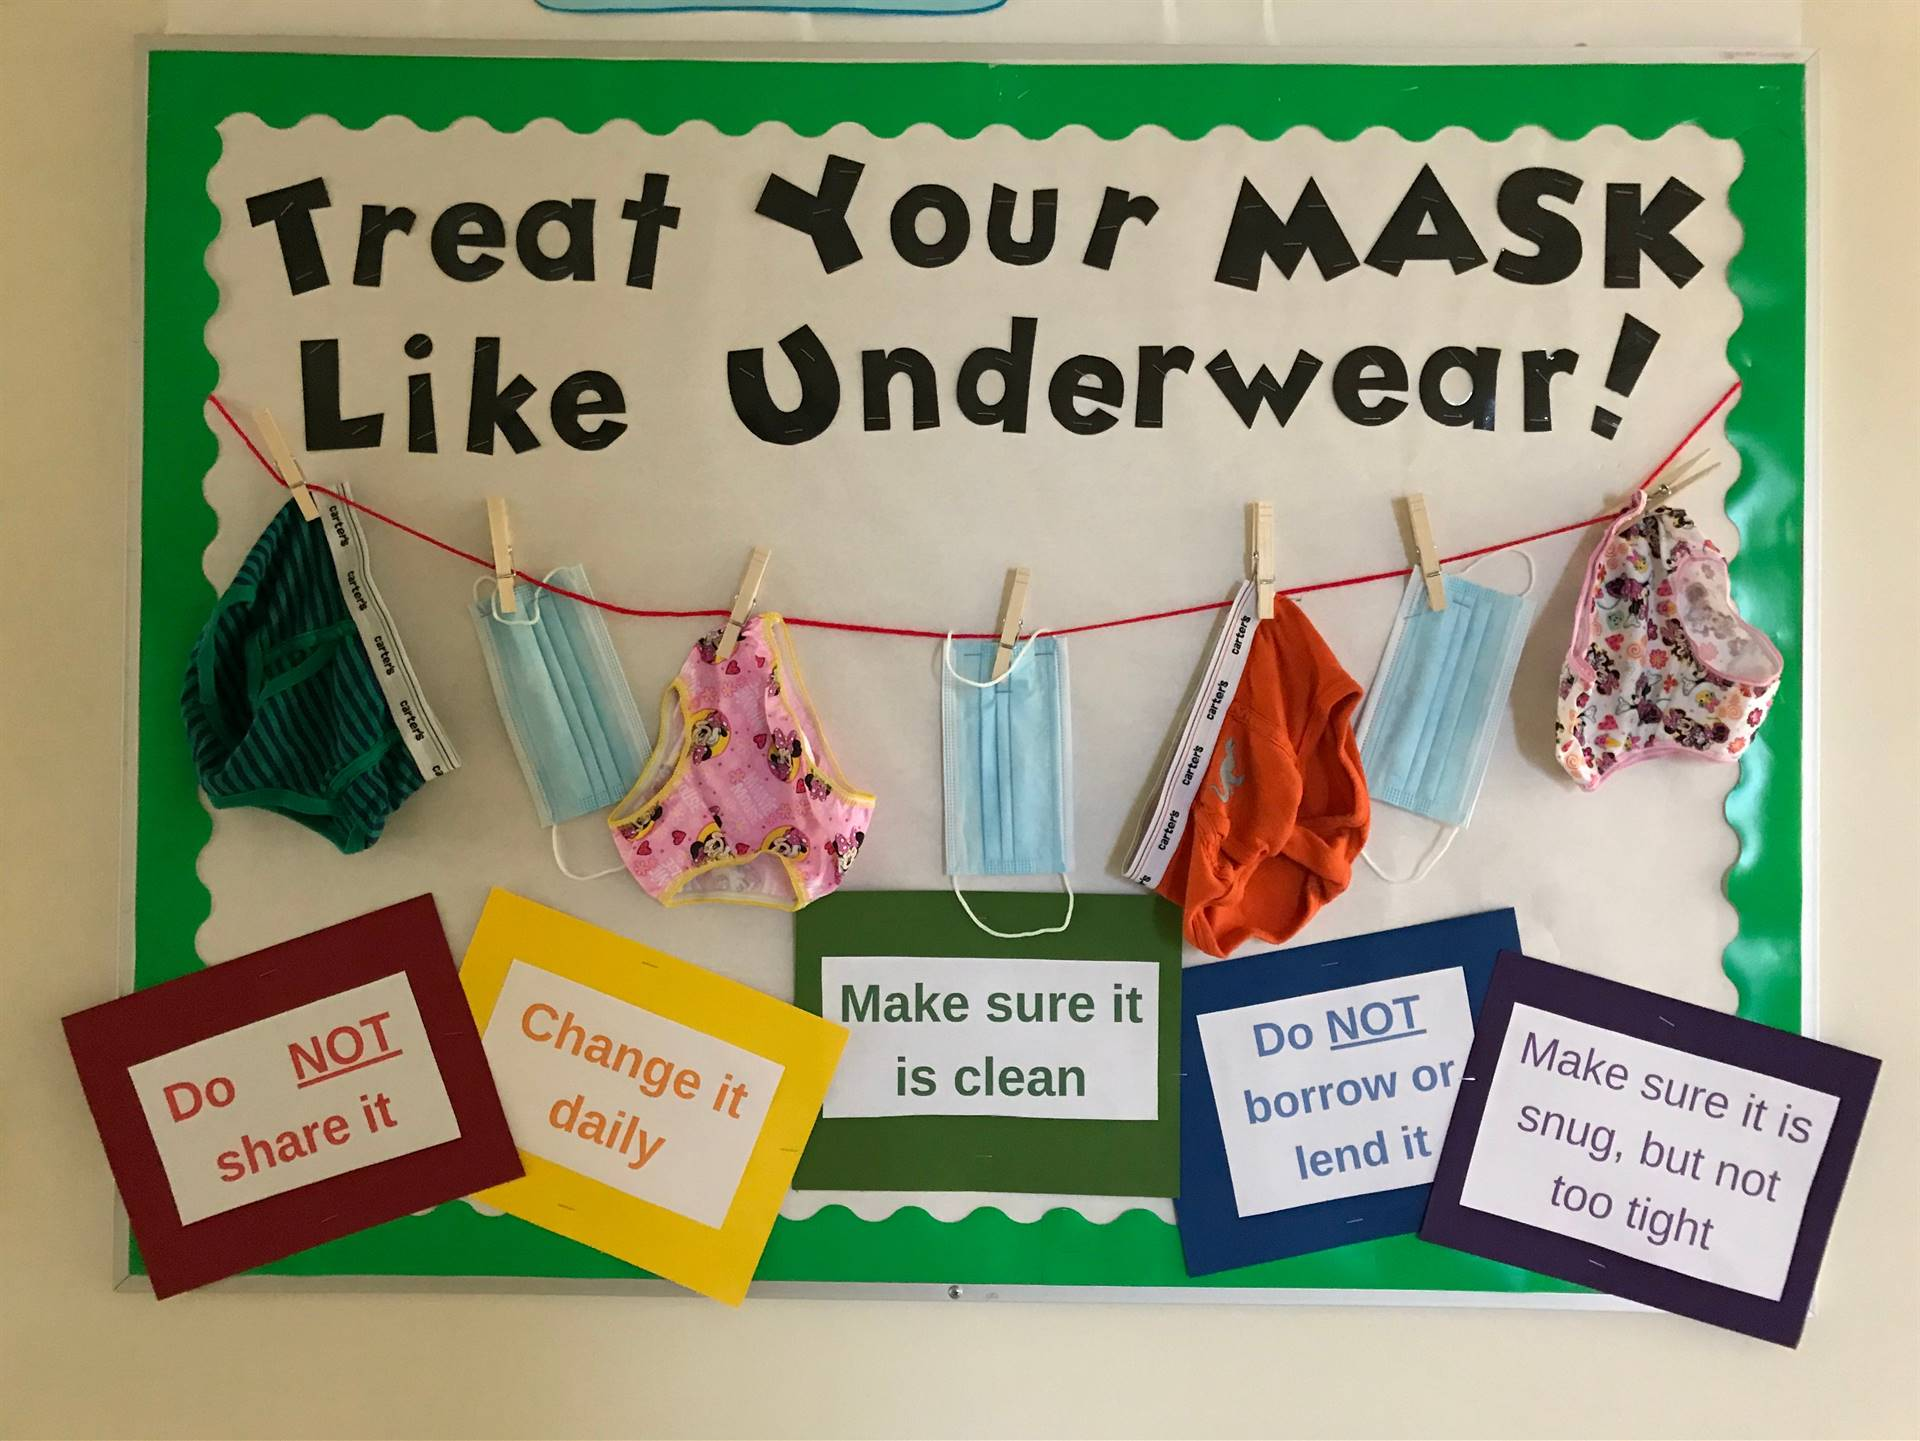 Treat your mask like underwear!